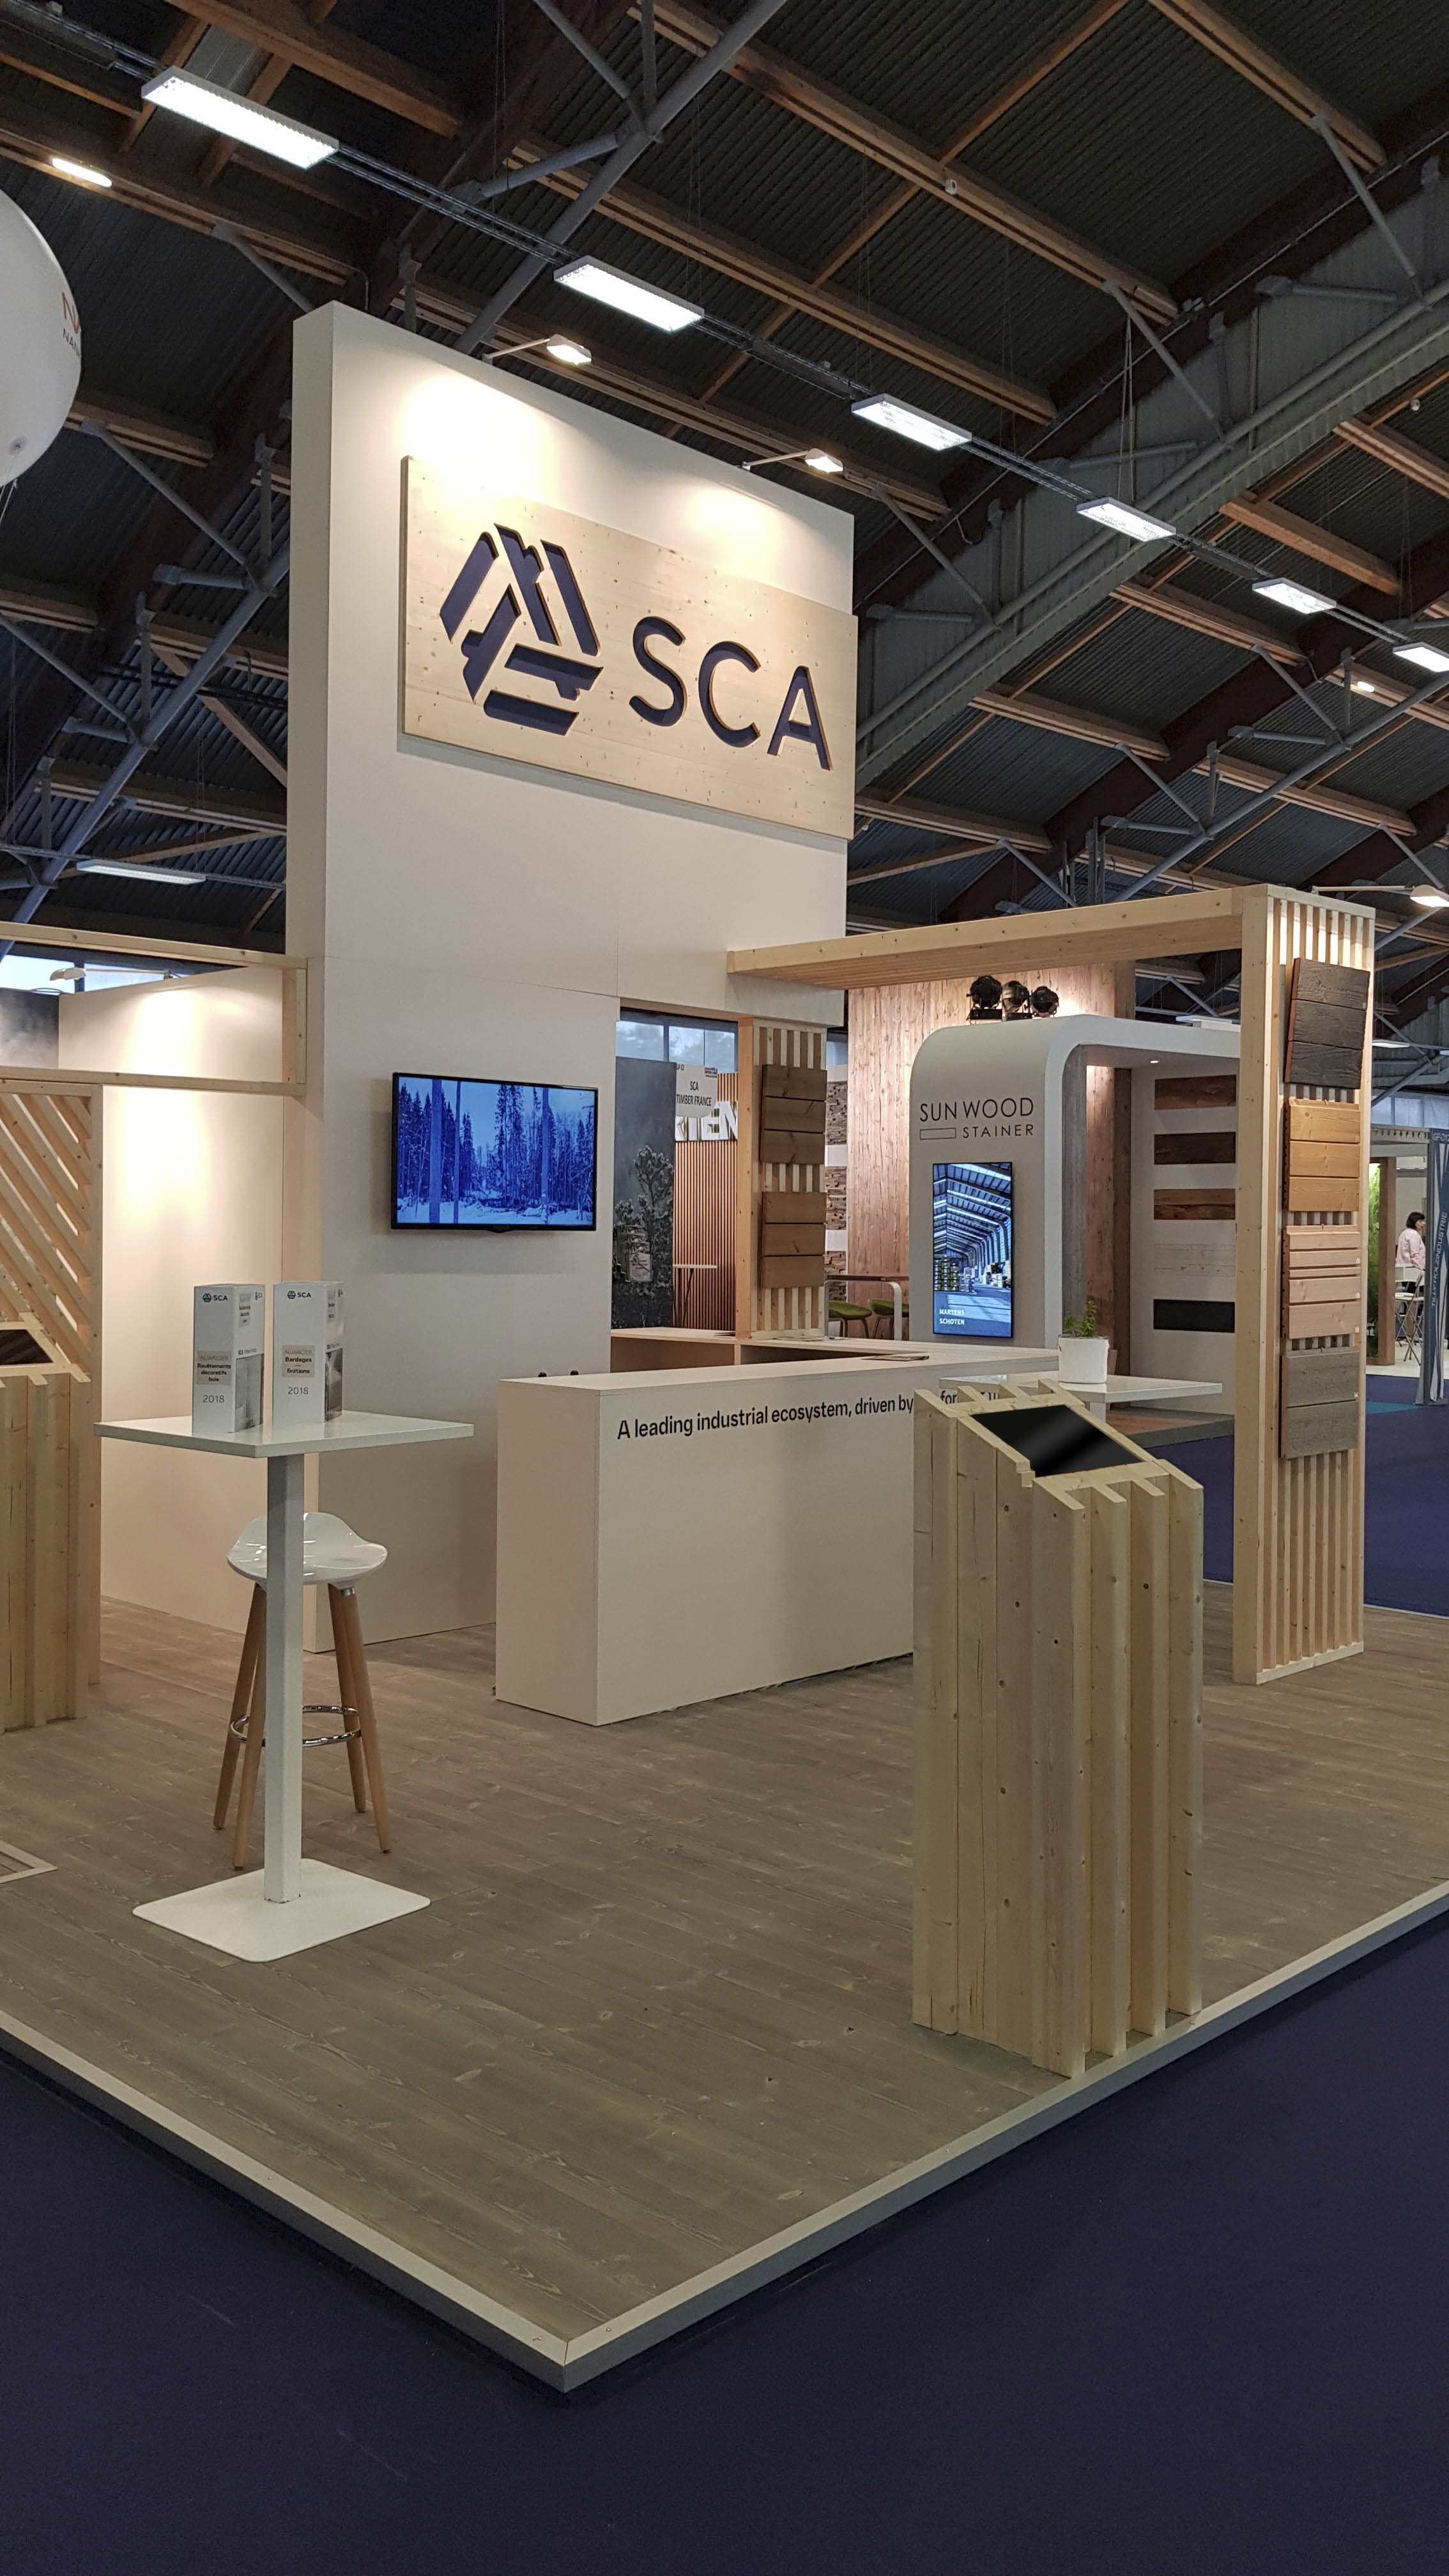 SCA stand at CIB 2018